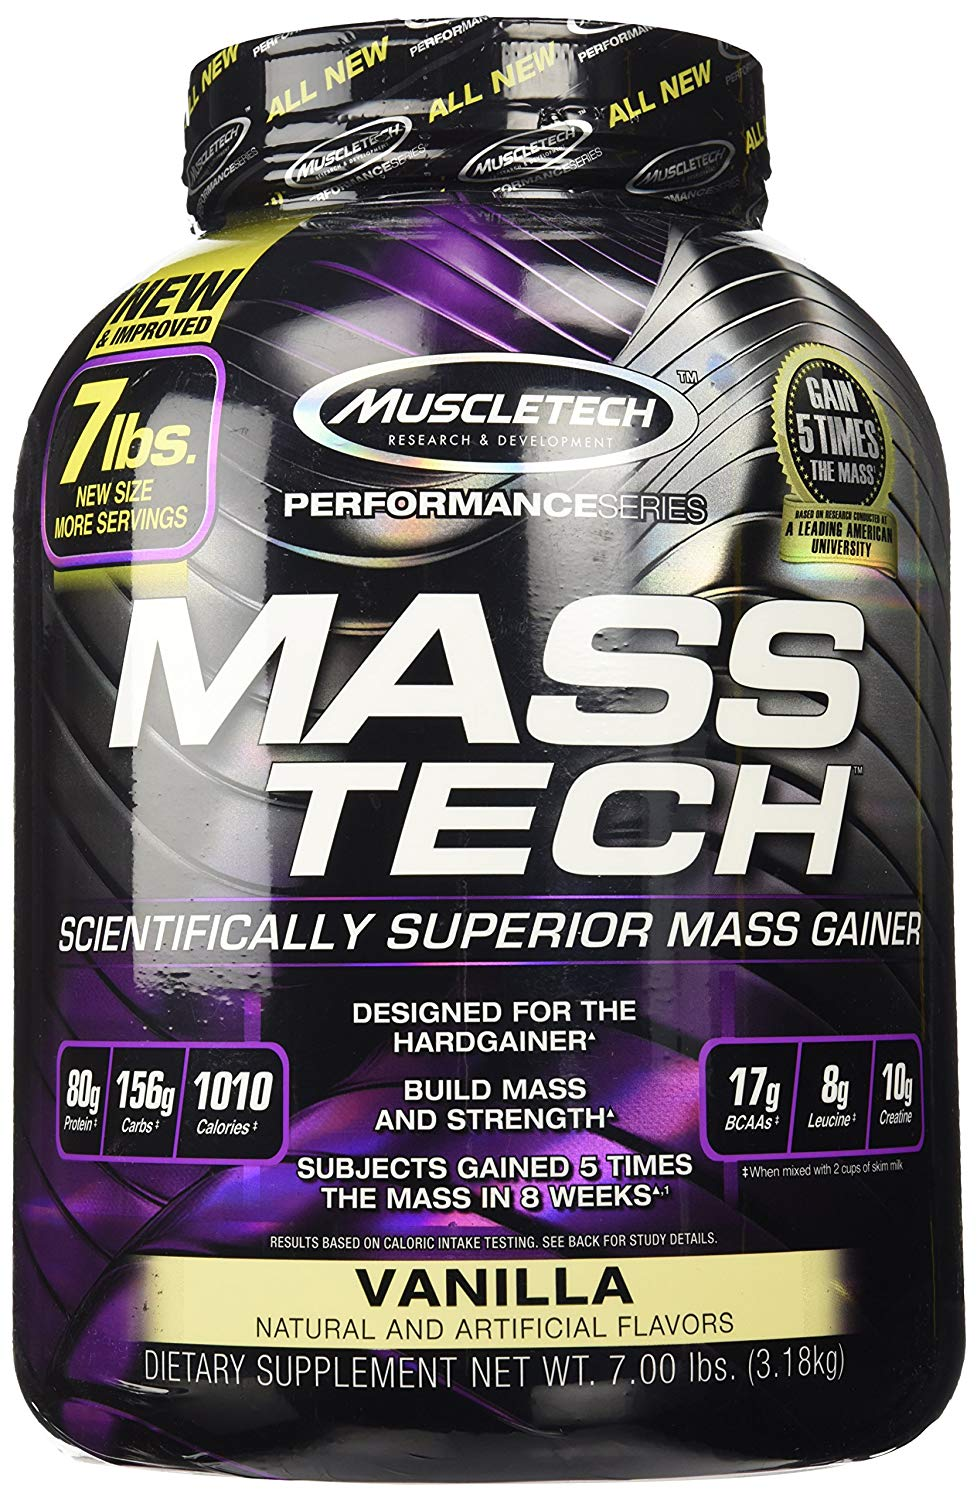 Susu Muscletech Mass Tech